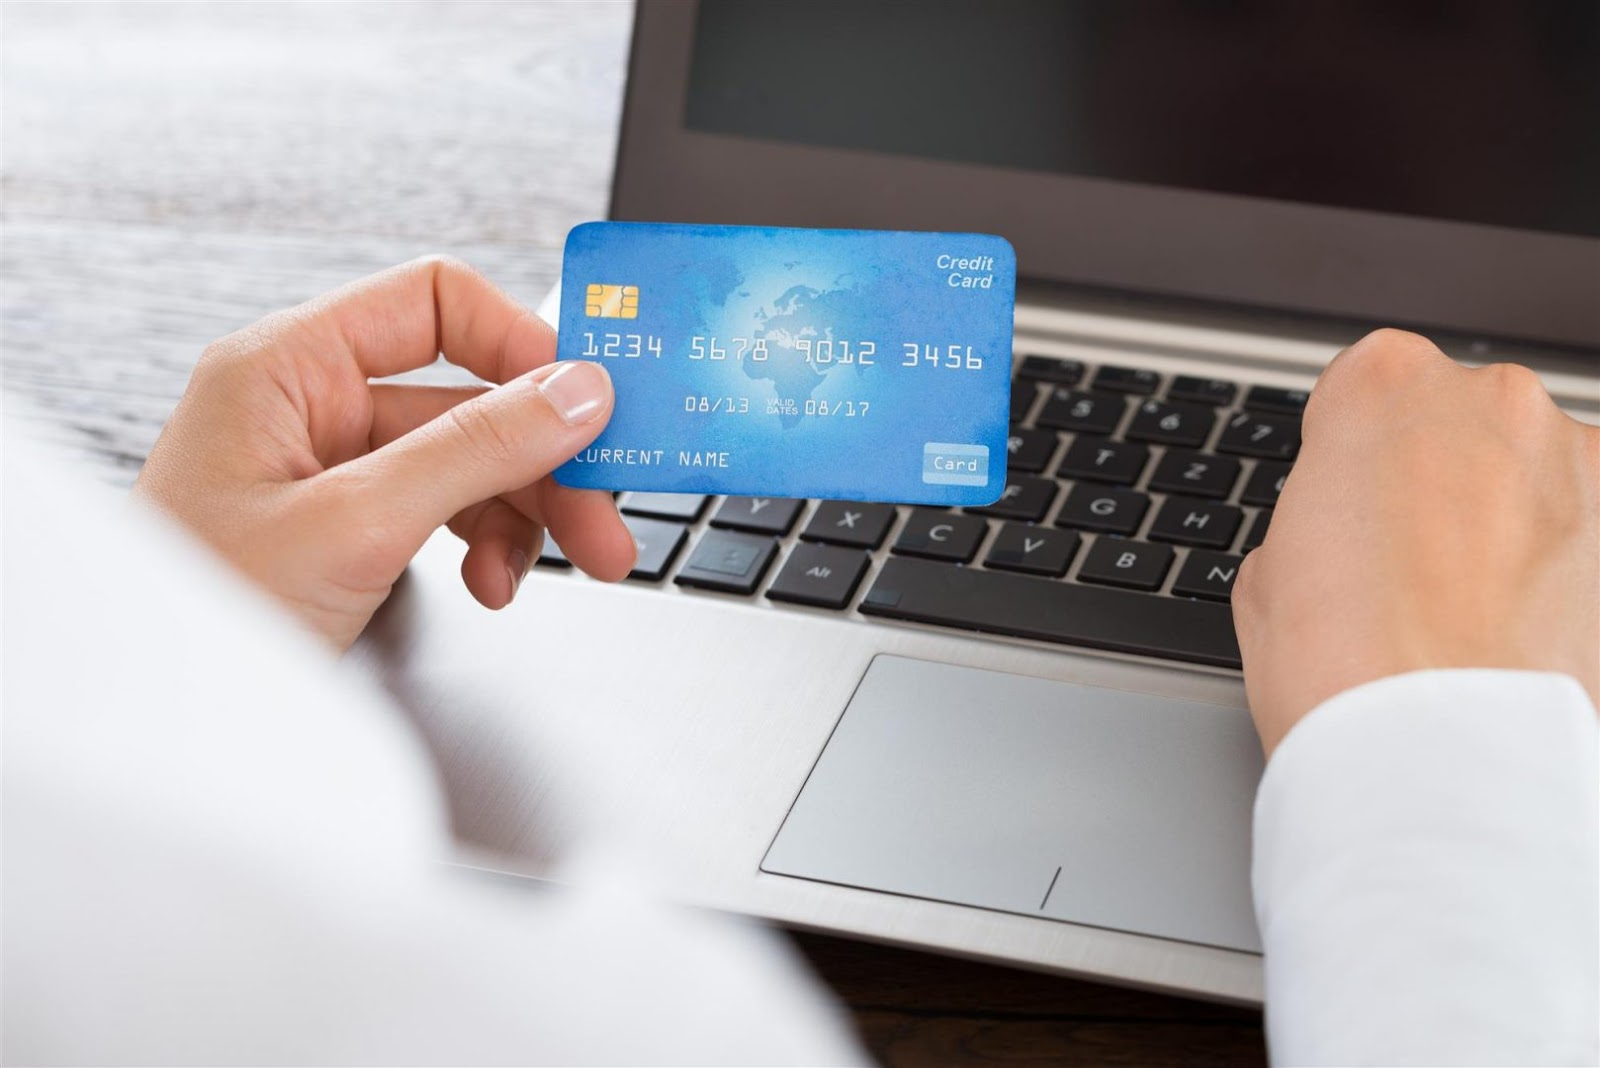 credit card info needed for online purchase - 1080×721